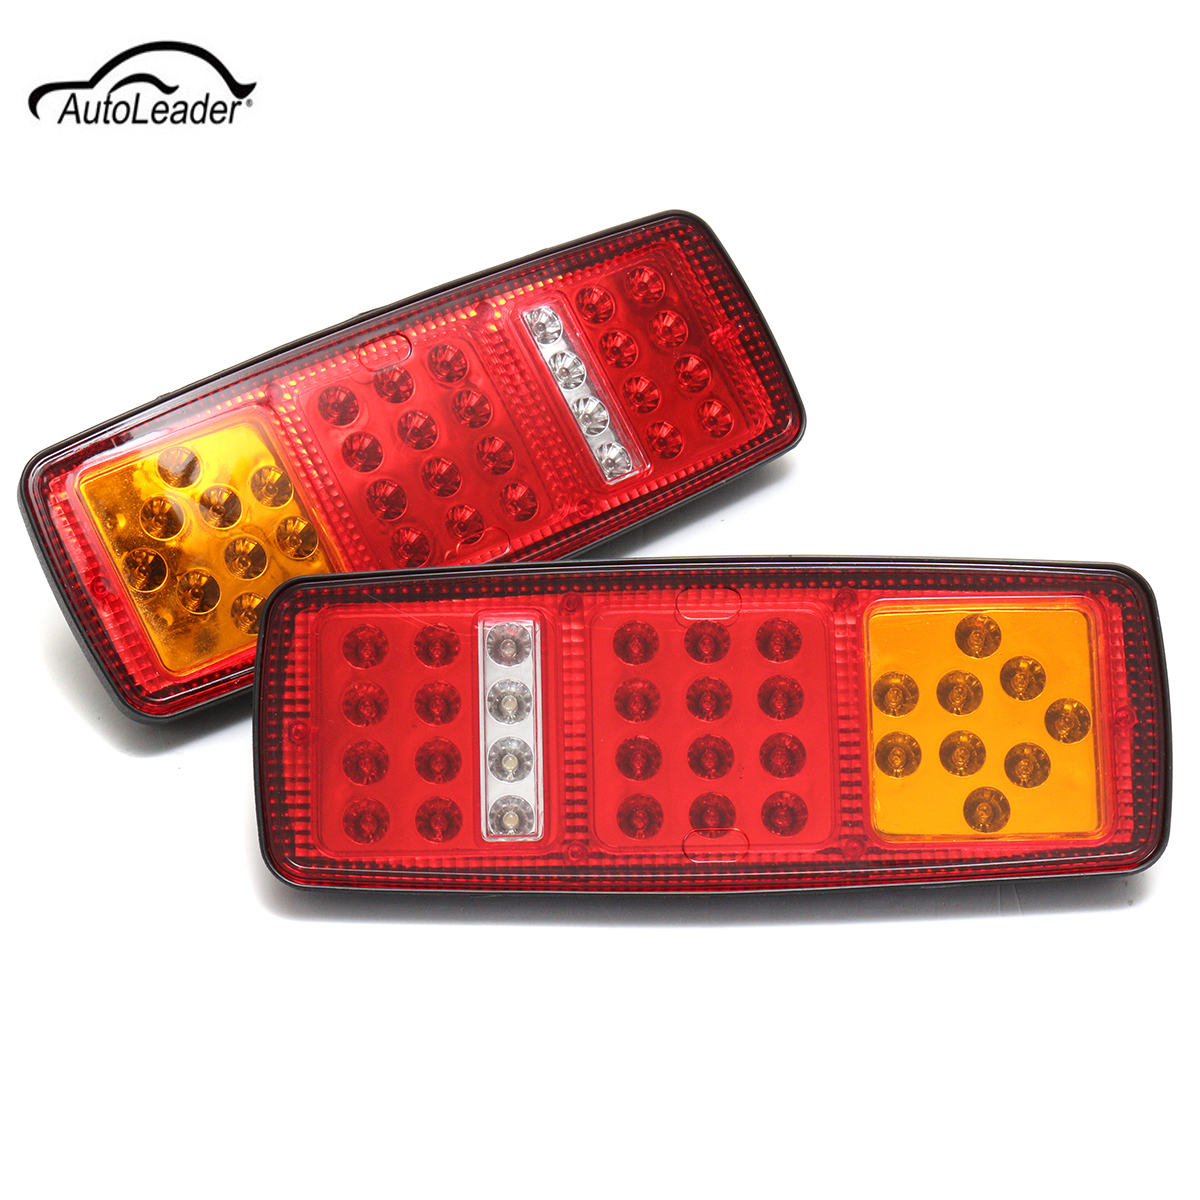 2Pcs 33LED Car Trailer 12V Tail Reverse Light Truck Bus for Van Stop Rear Tail Indicator Lights Reverse LED Lamp Waterproof